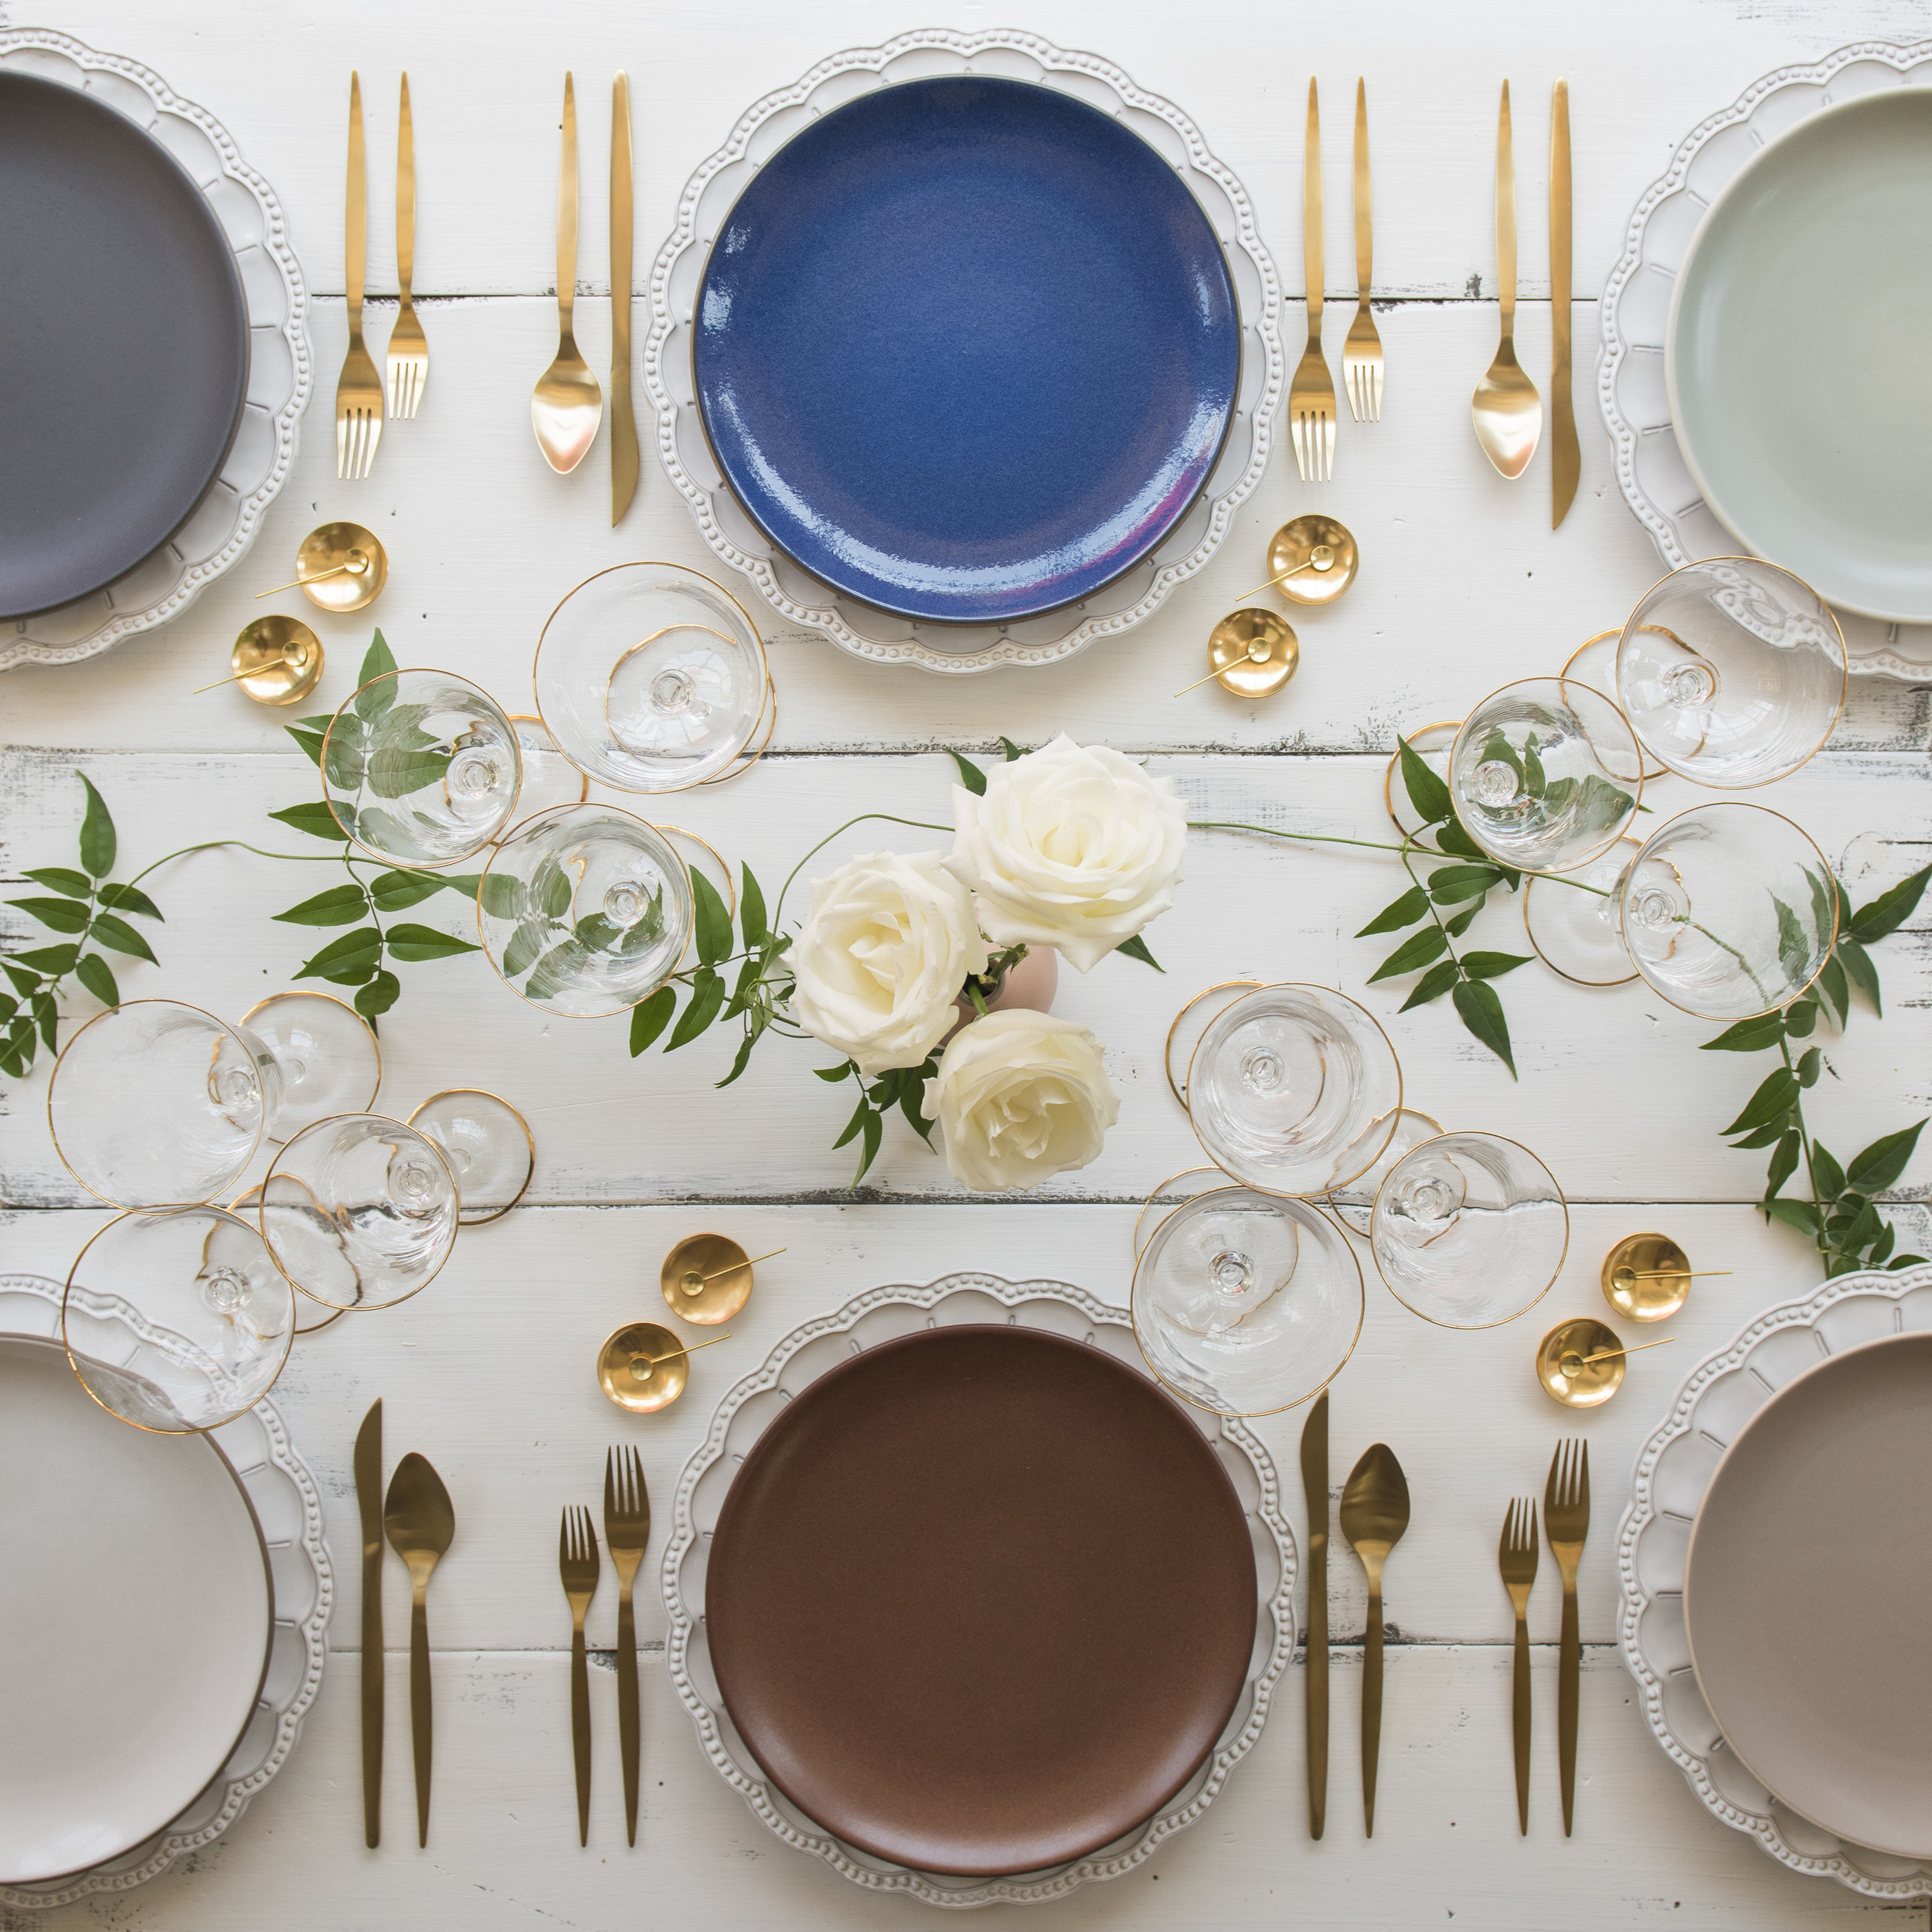 RENT: Signature Collection Chargers + Heath Ceramics in Indigo/Slate, Moonstone, Mist, Opaque White, Redwood and French Grey + Celeste Flatware in Matte Gold + Chloe 24k Gold Rimmed Stemware + 14k Gold Salt Cellars + Tiny Gold Spoons   SHOP: Chloe 24k Gold Rimmed Stemware + 14k Gold Salt Cellars + Tiny Gold Spoons